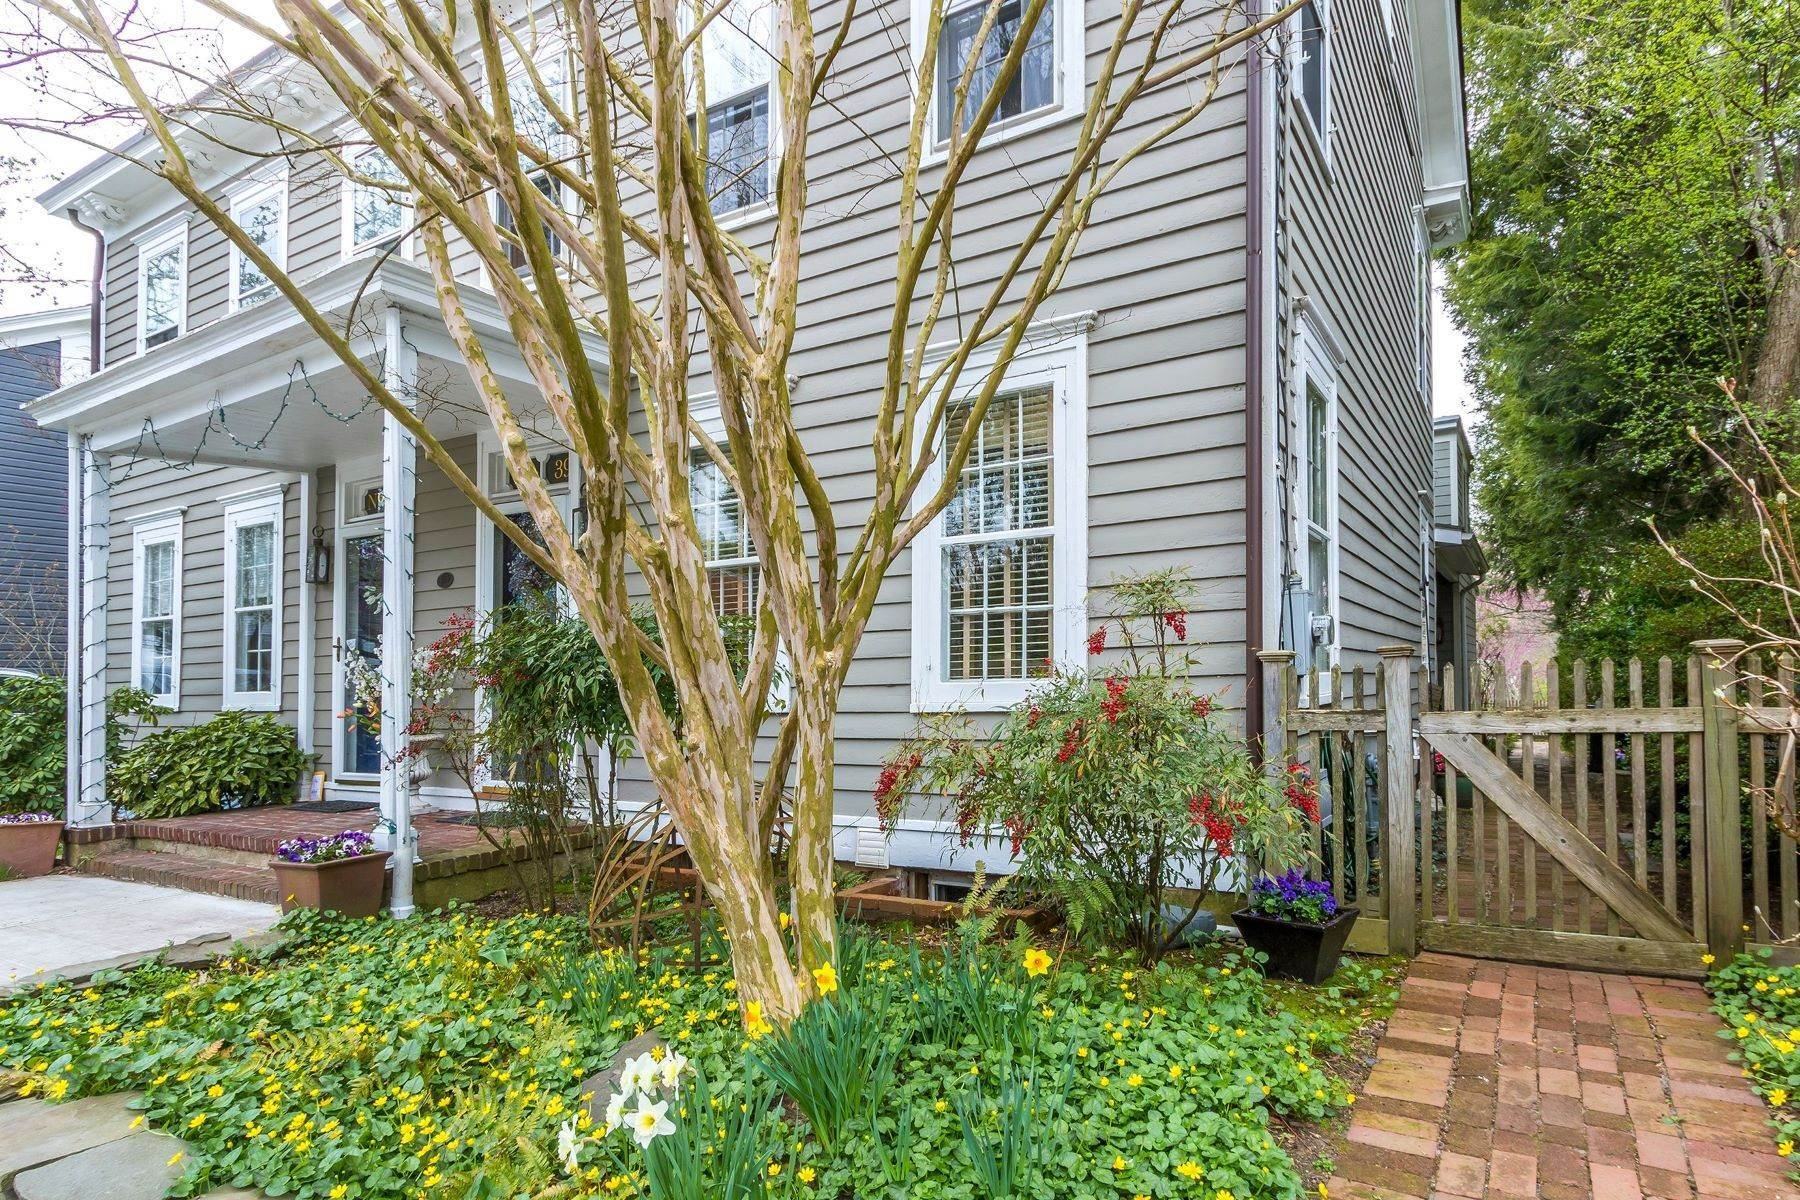 Single Family Homes for Sale at 39 Clinton Street, Lambertville, NJ 08530 39 Clinton Street Lambertville, New Jersey 08530 United States